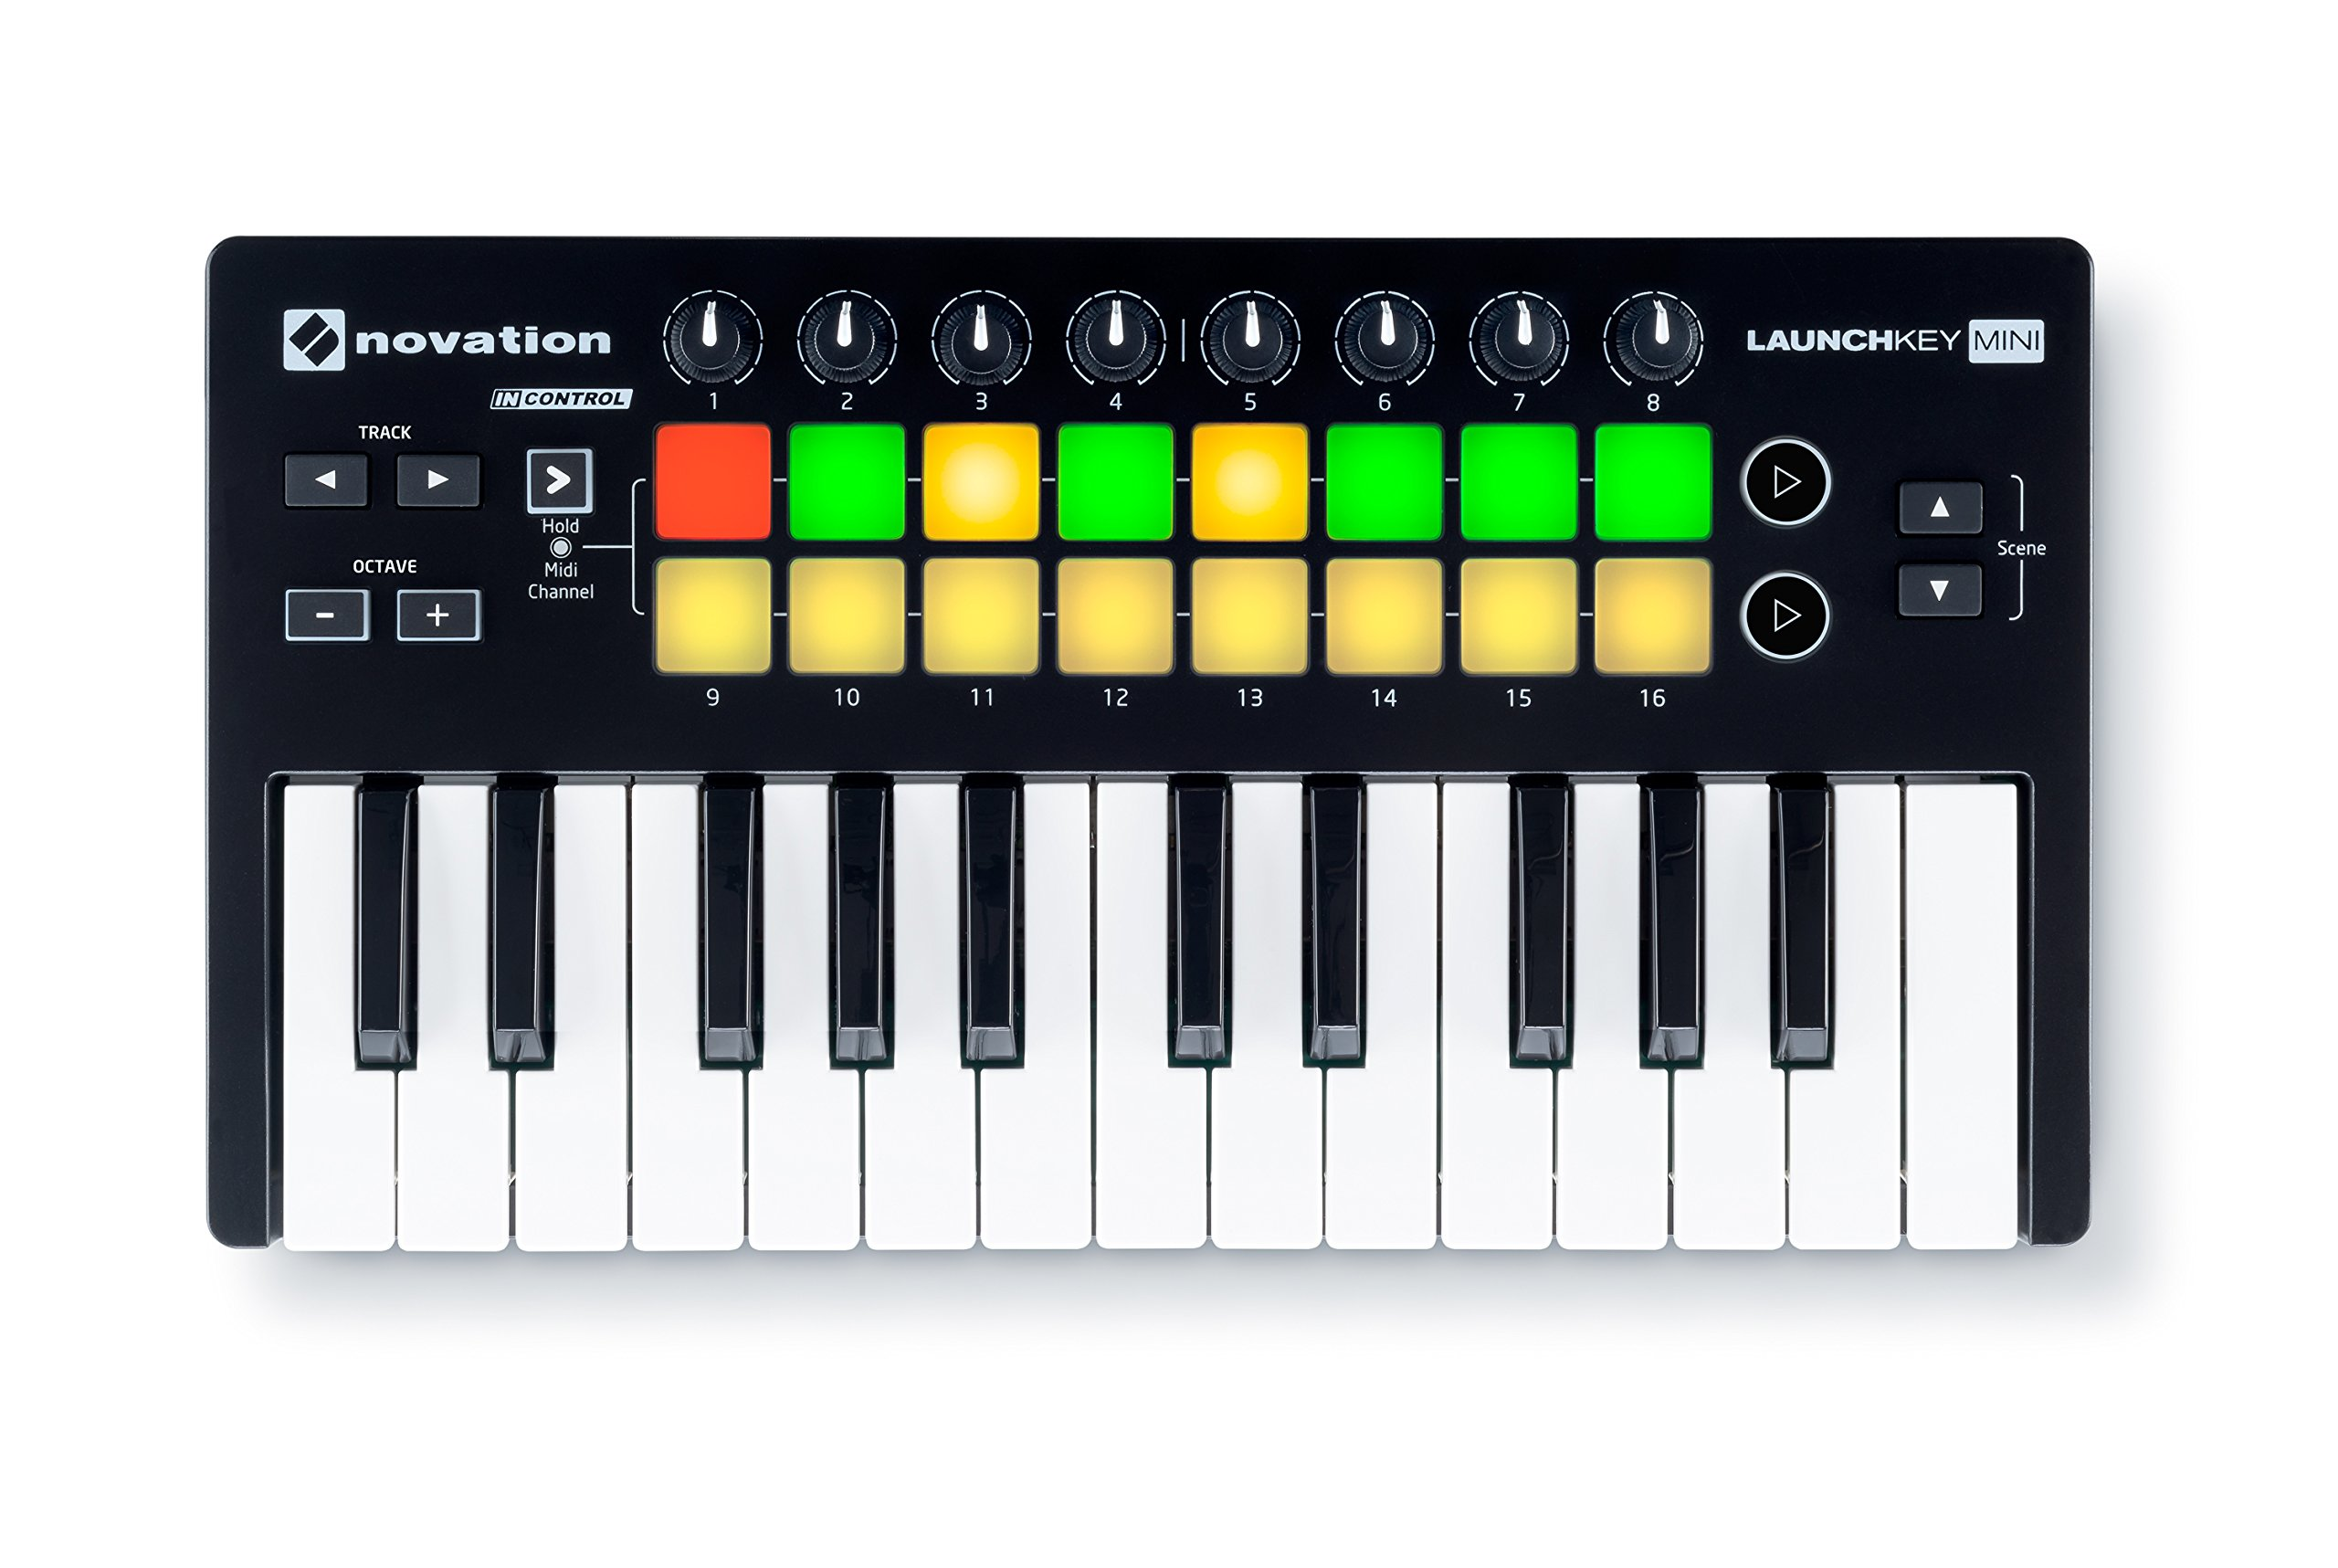 Novation Launchkey Mini 25-Note USB Keyboard Controller, MK2 Version by Novation